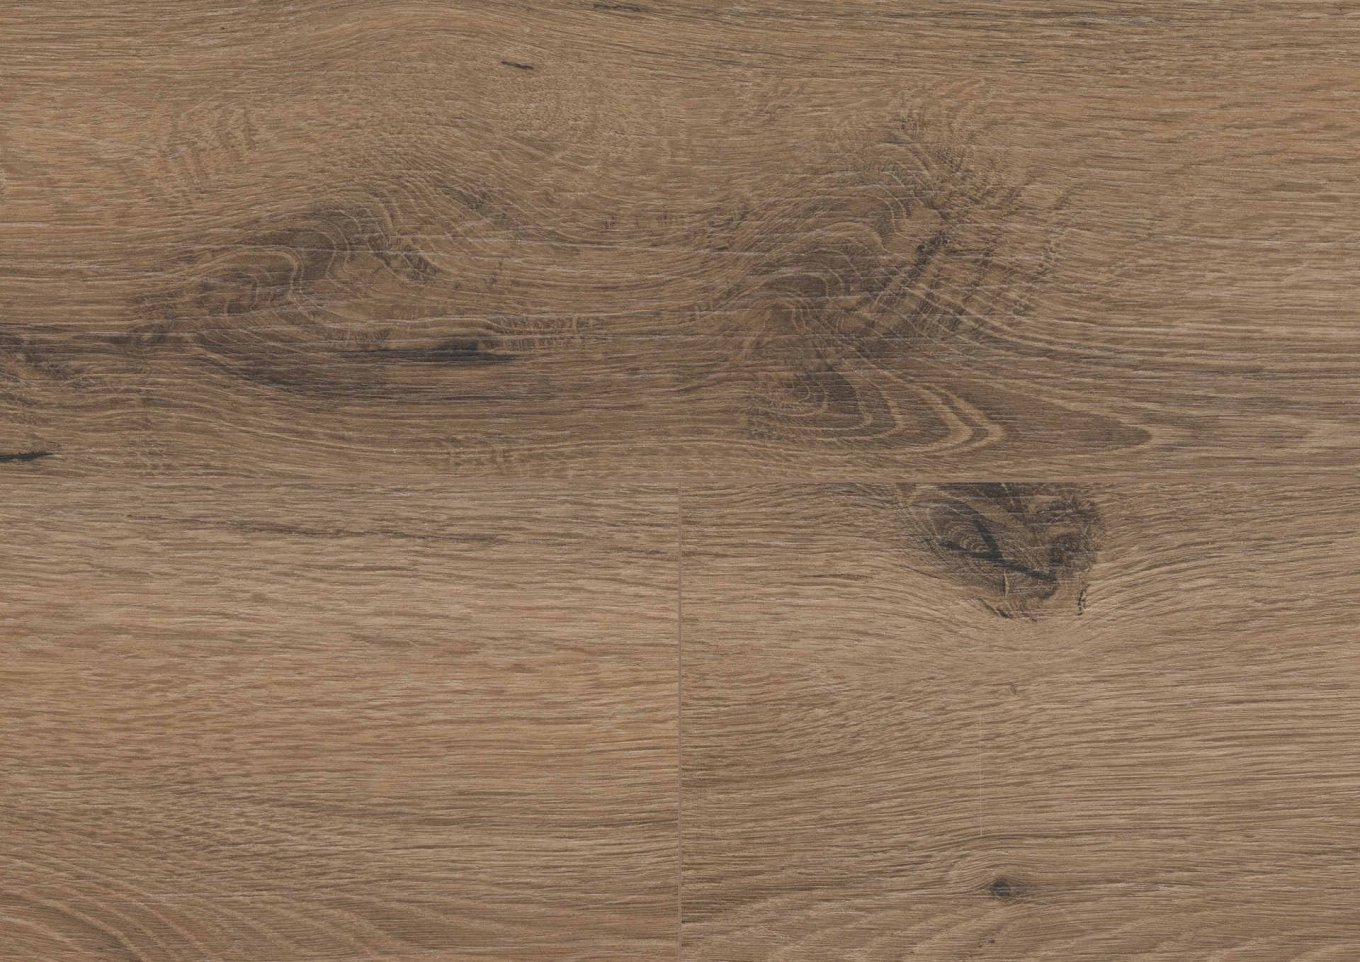 Panel laminowany Strong Oak Darkbrown kolekcja wineo 500 medium